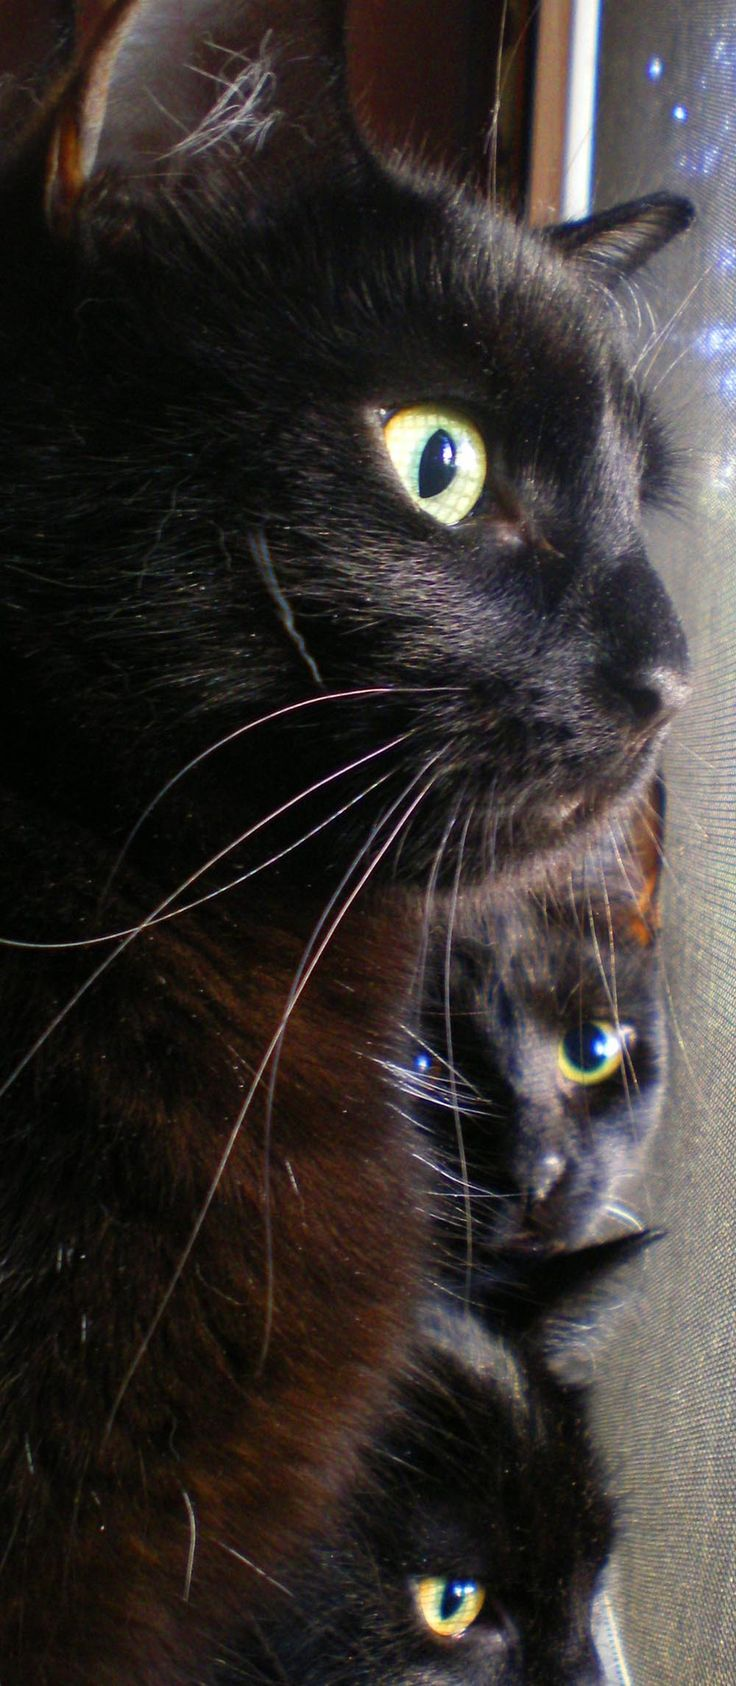 19 best black cats images on pinterest cats black and every day black cats at window n you imagine coming home to this furry family amipublicfo Gallery